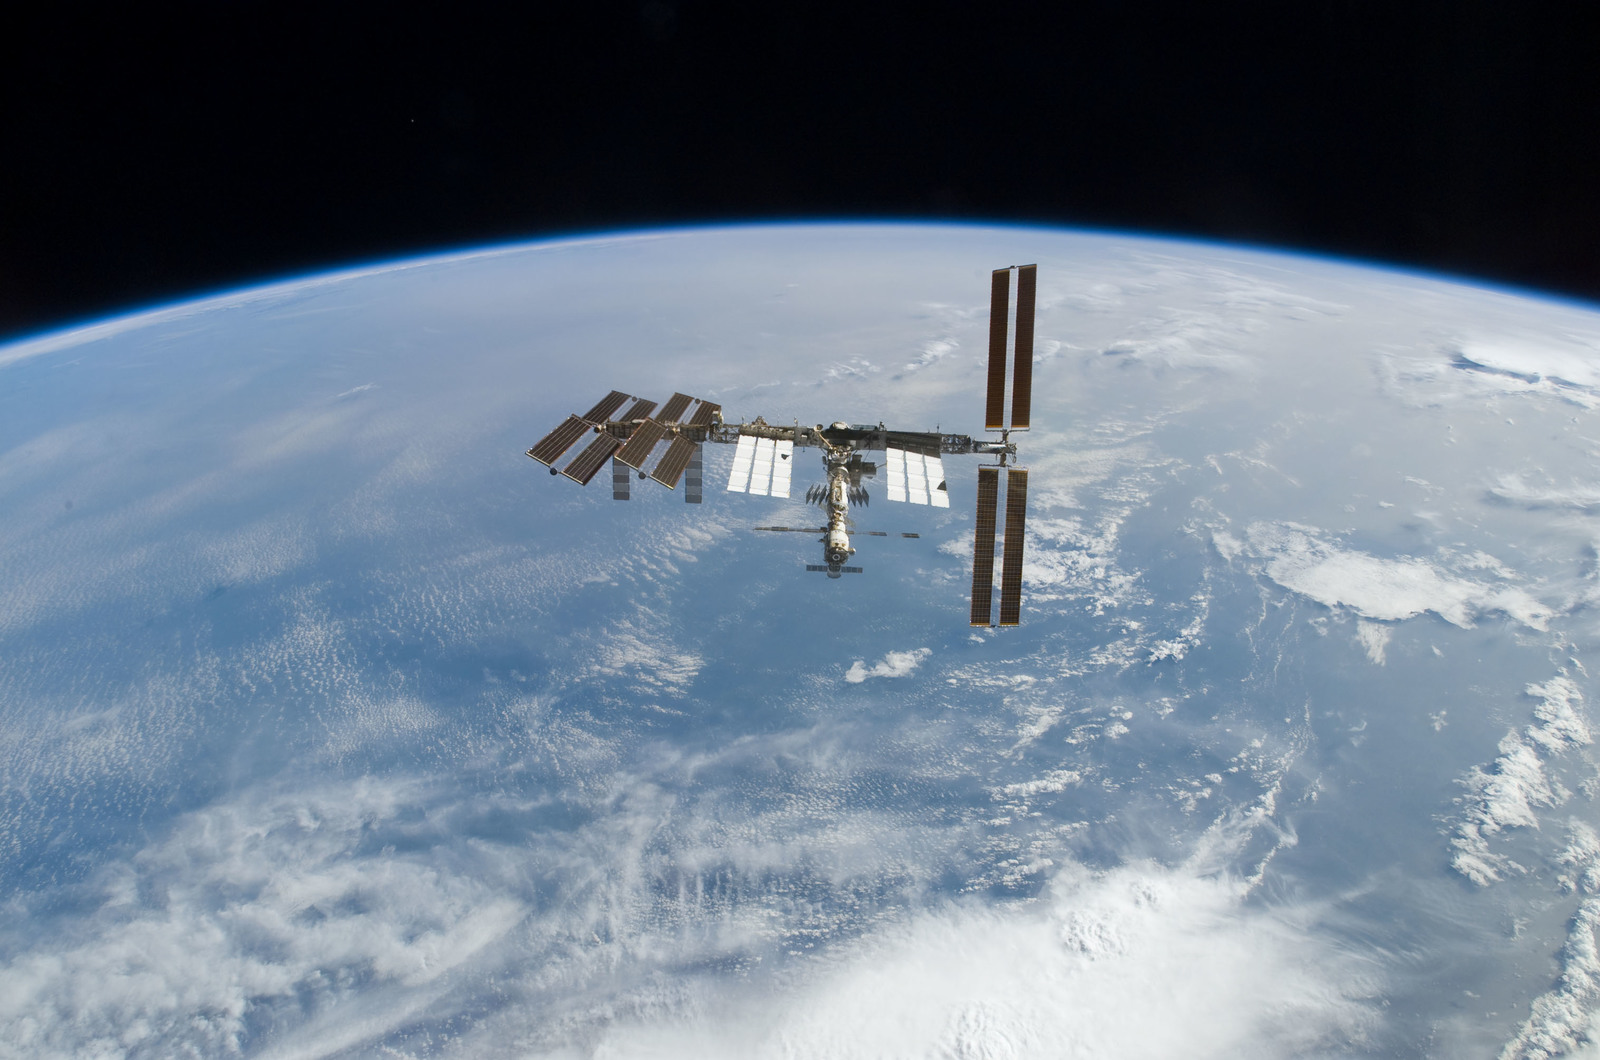 S122E010947 - STS-122 - View of ISS after STS-122 Undocking